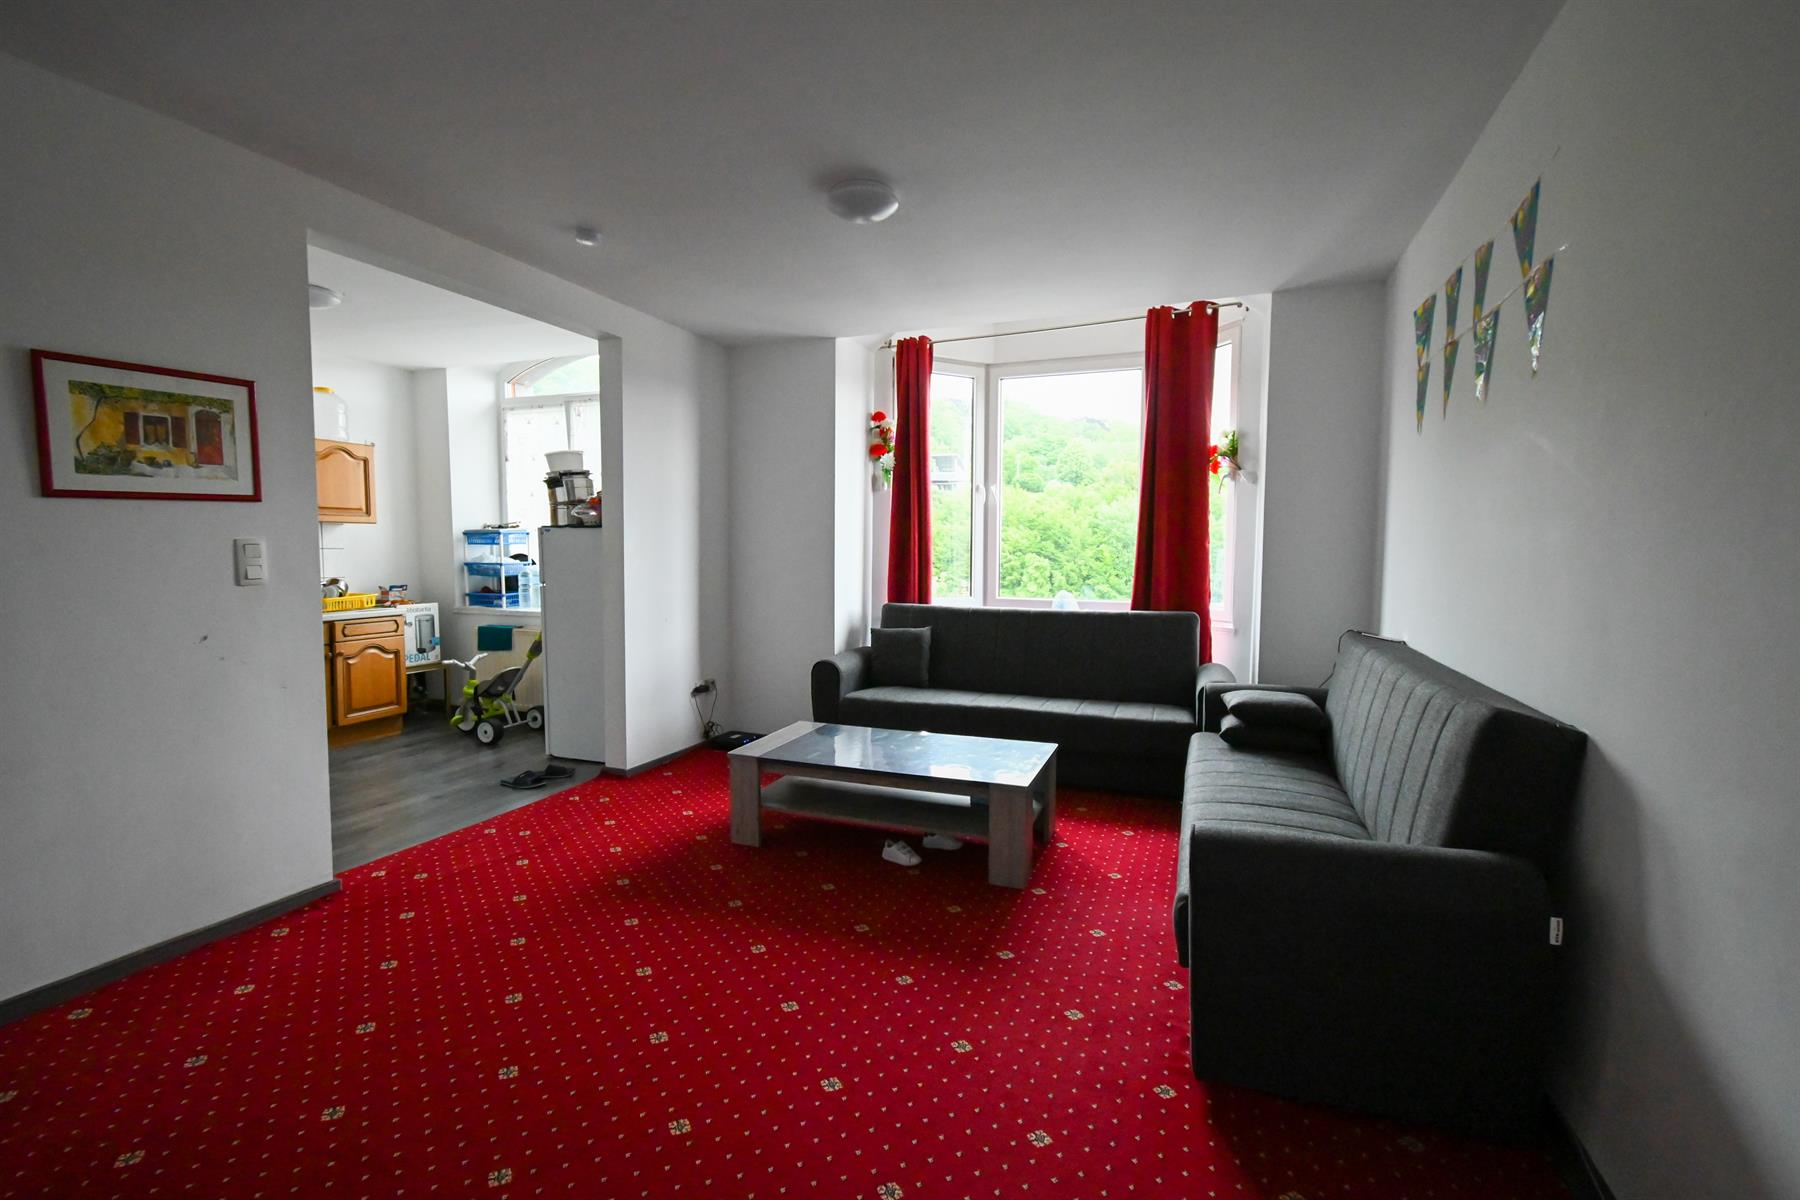 Appartement - Dison - #4406818-5